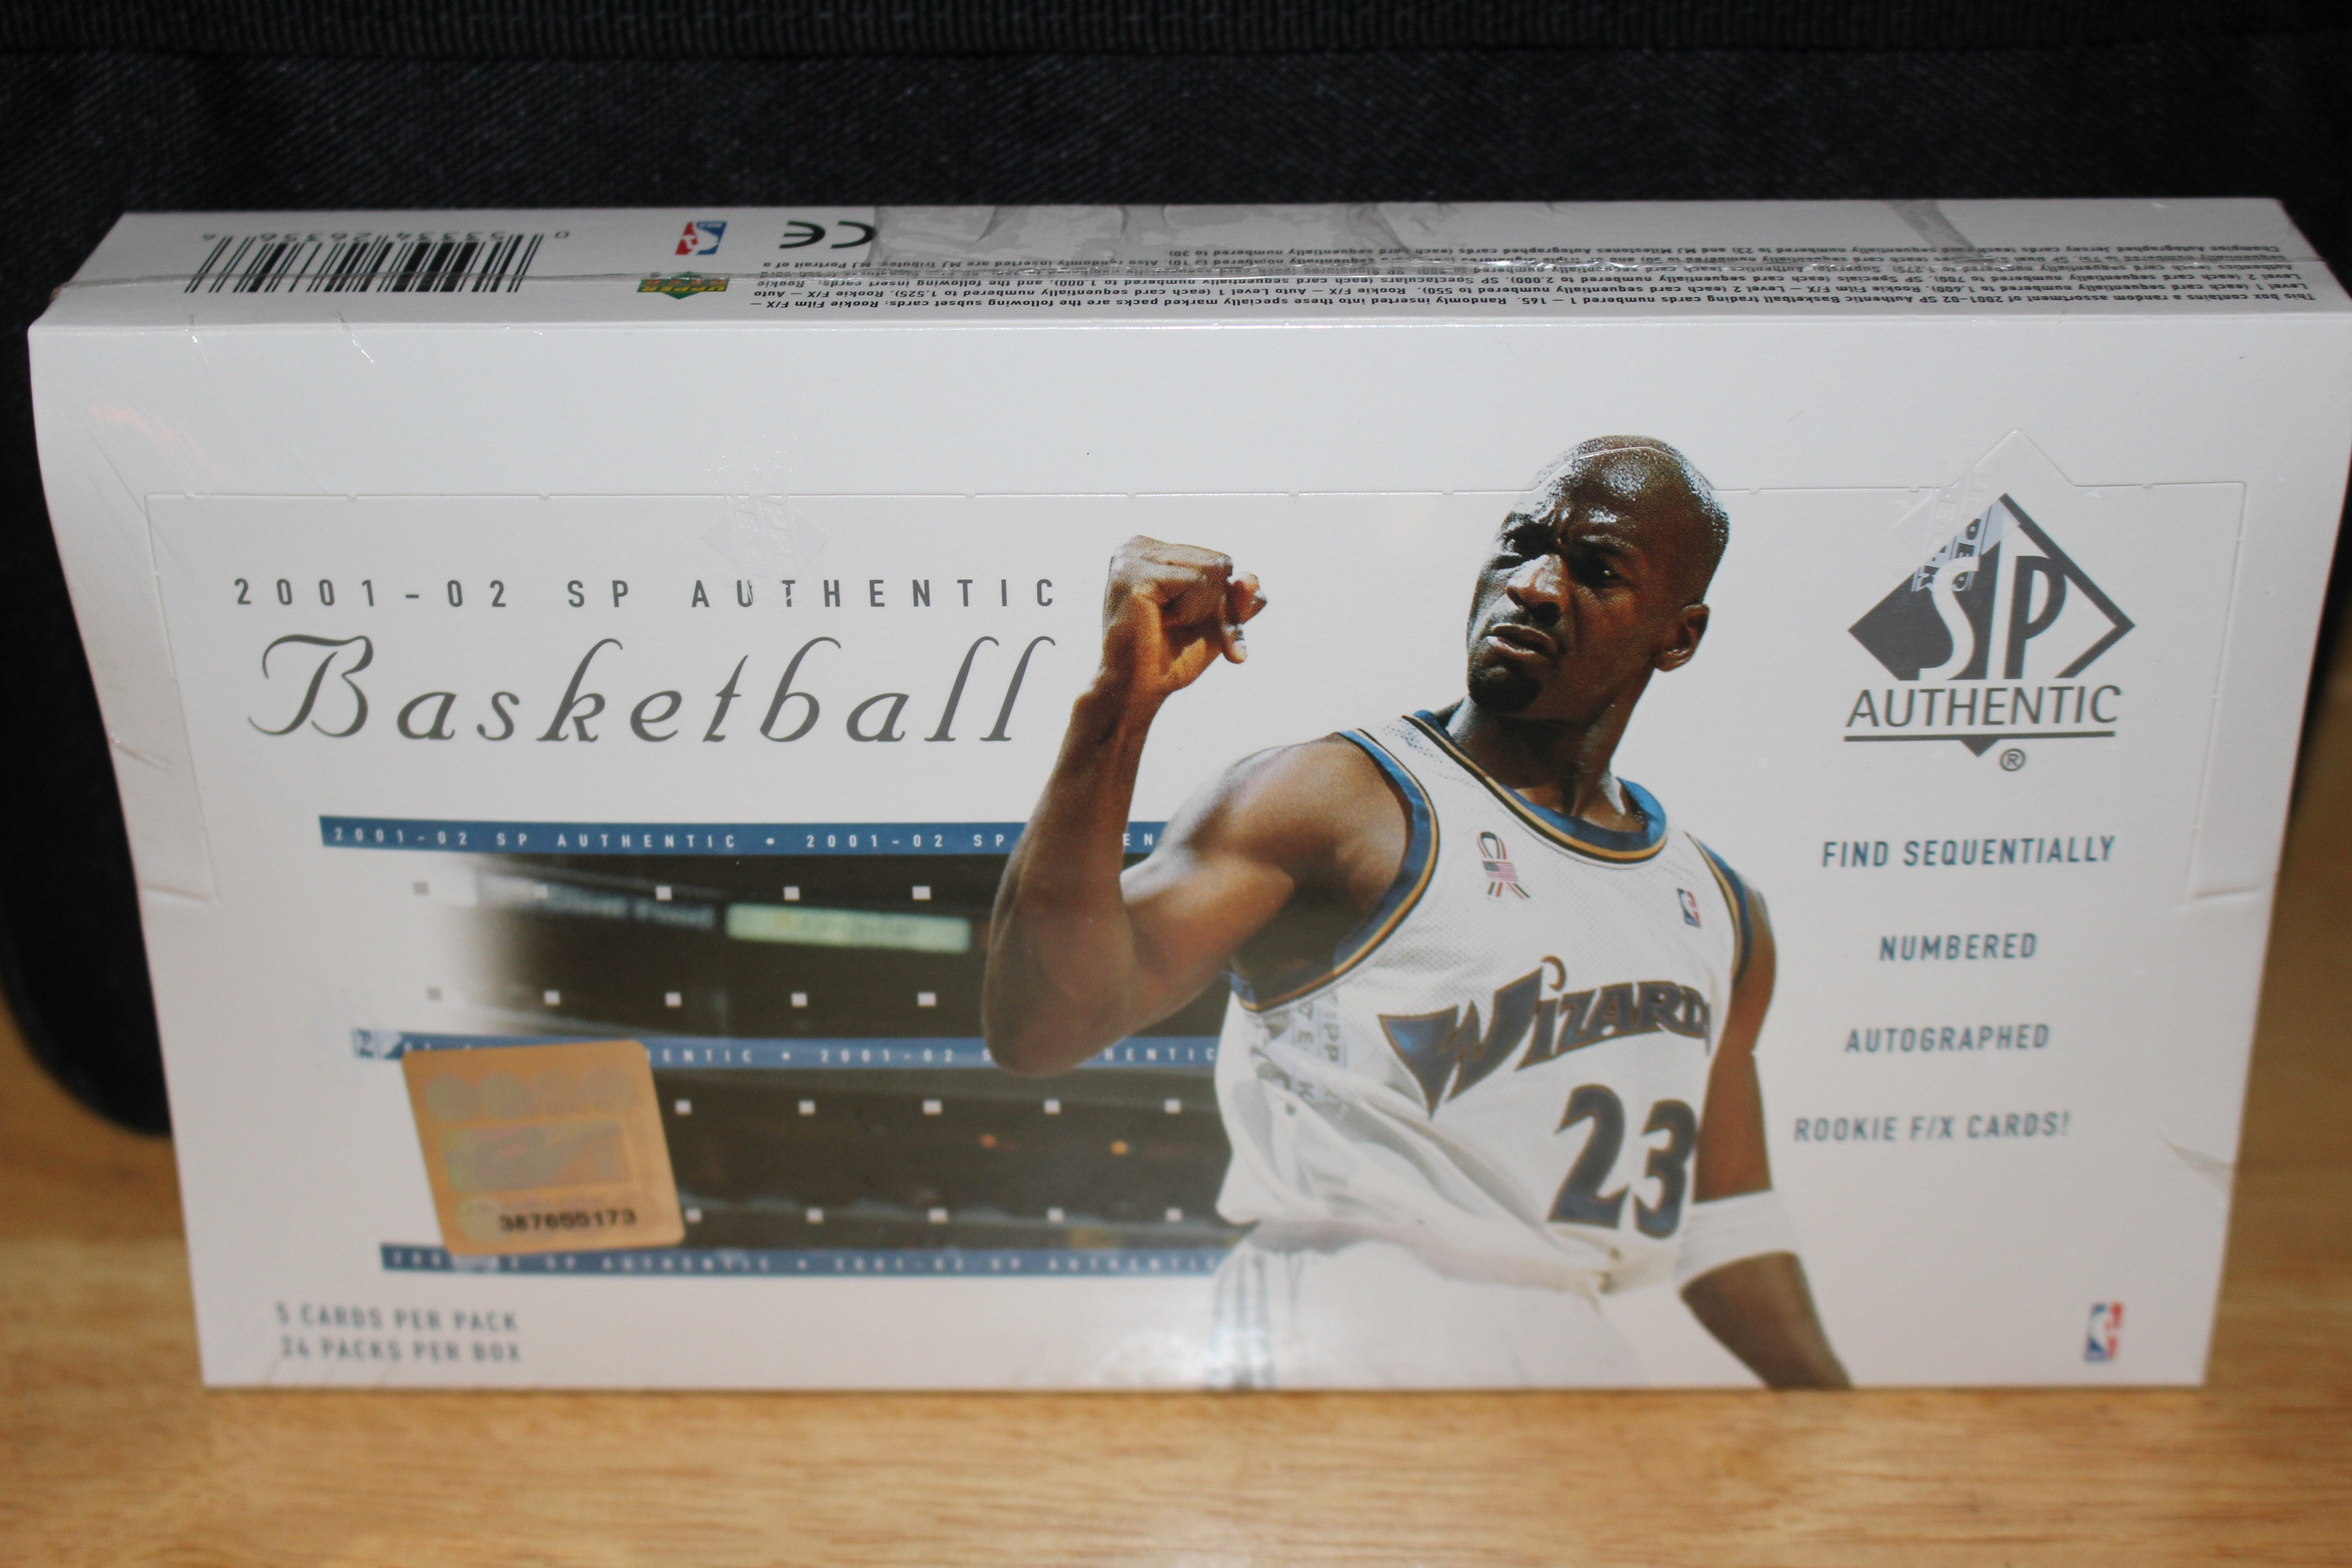 2000-01 SP Authentic Basketball Hobby Wax Box, Factory Sealed